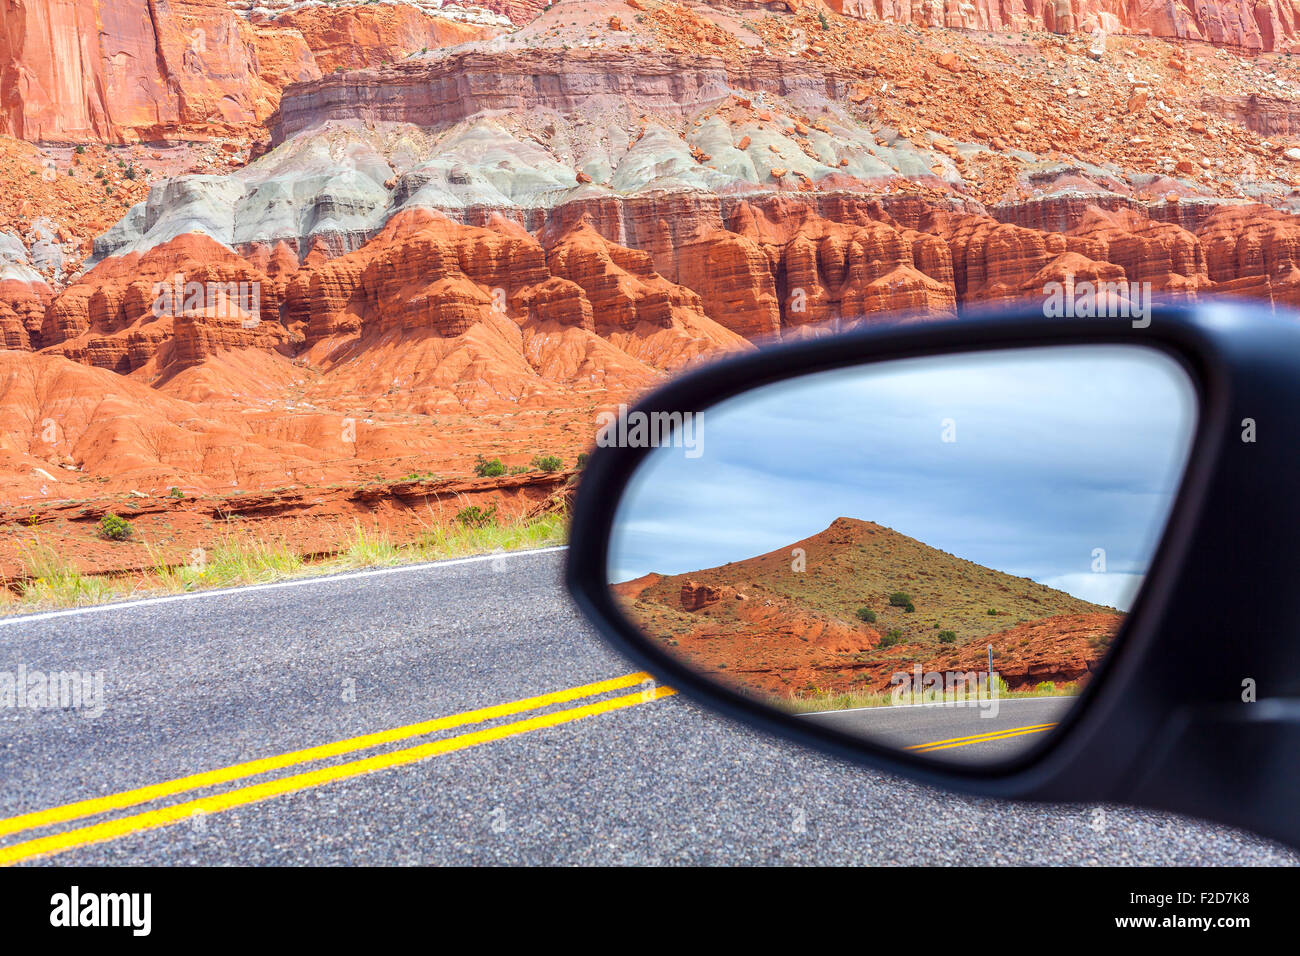 Road in a mirror, Capitol Reef National Park, USA. - Stock Image